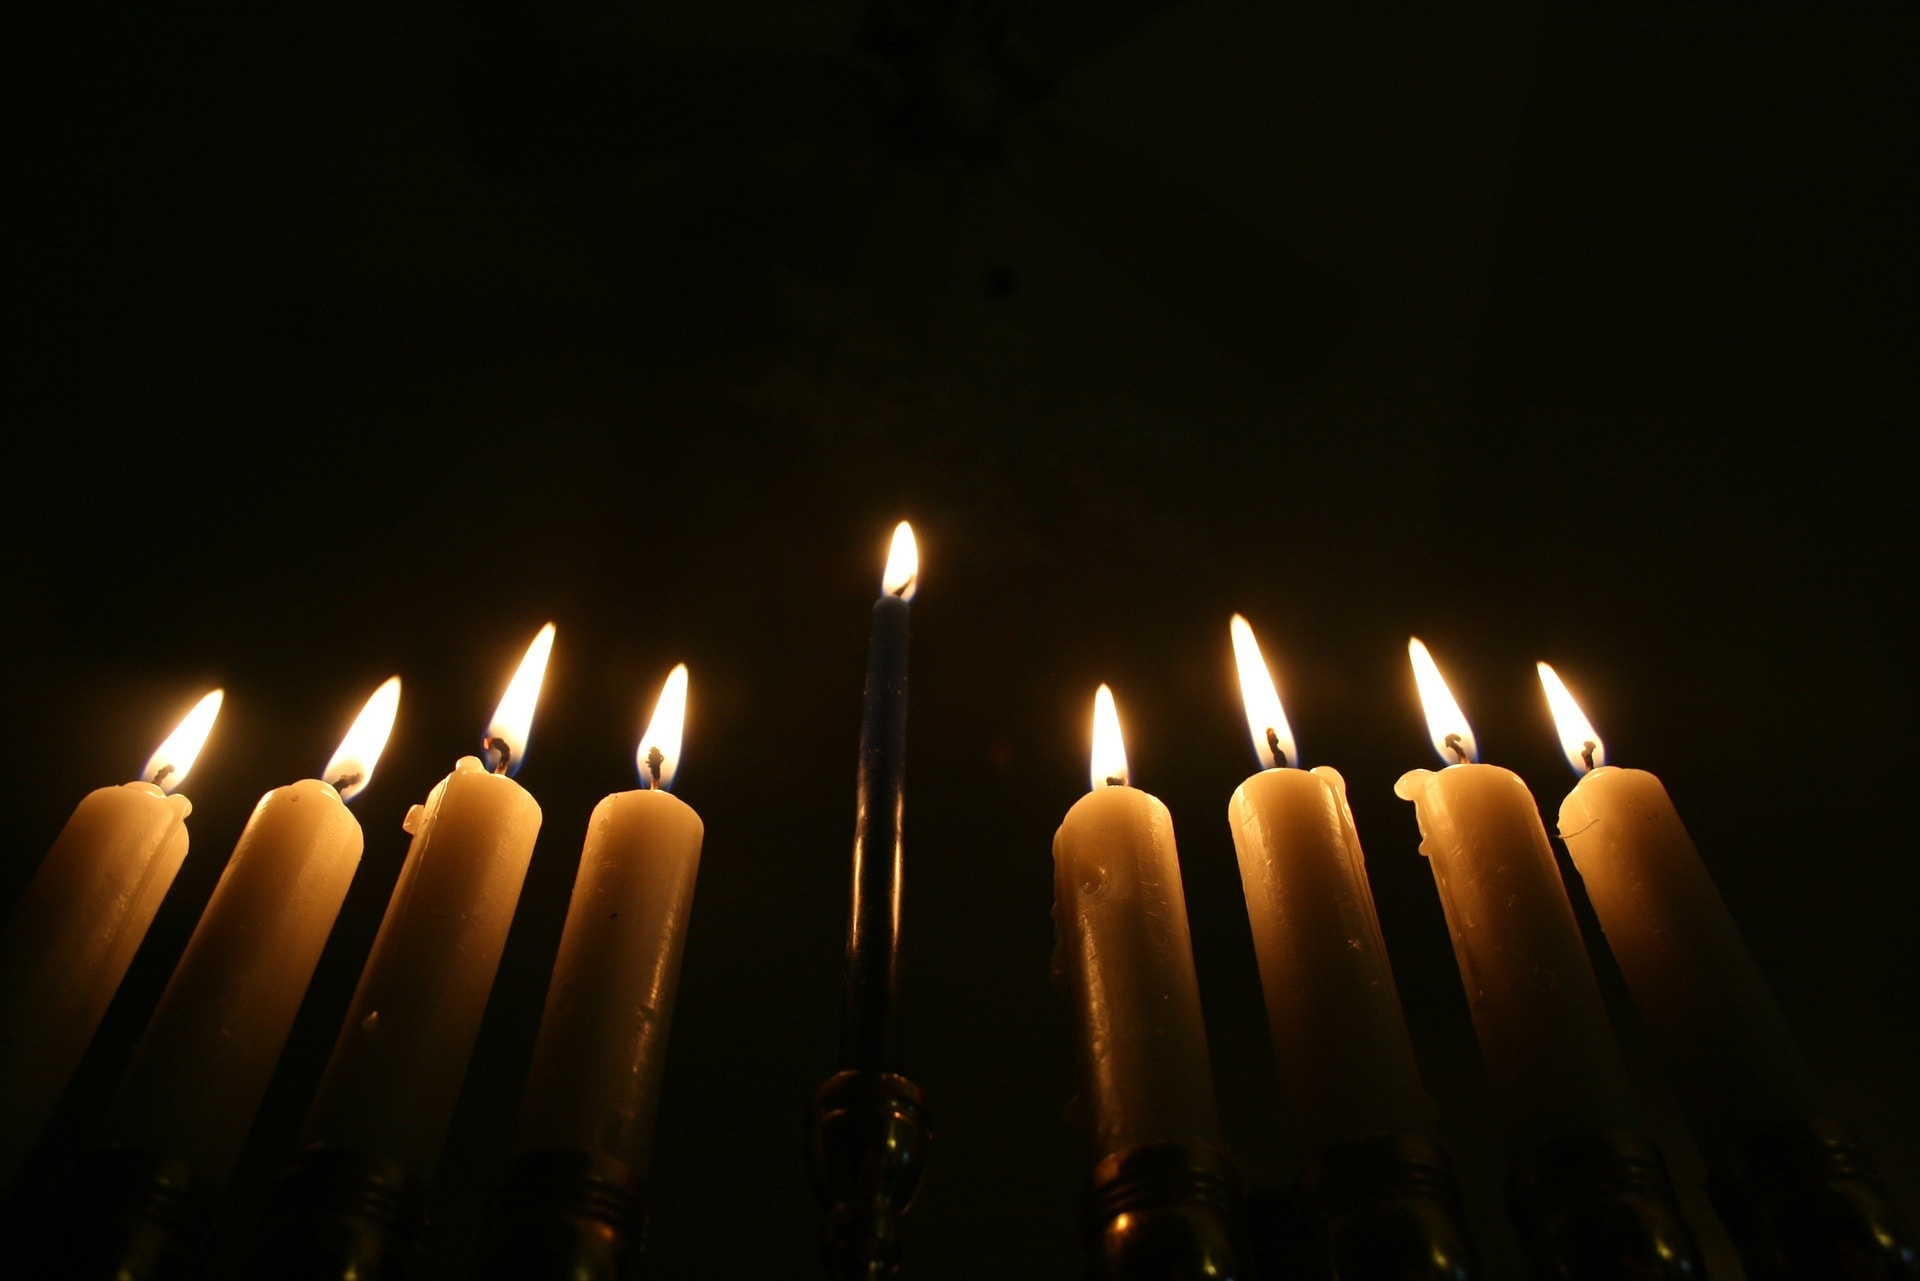 Hanukkah – The complete guide on Chanukah